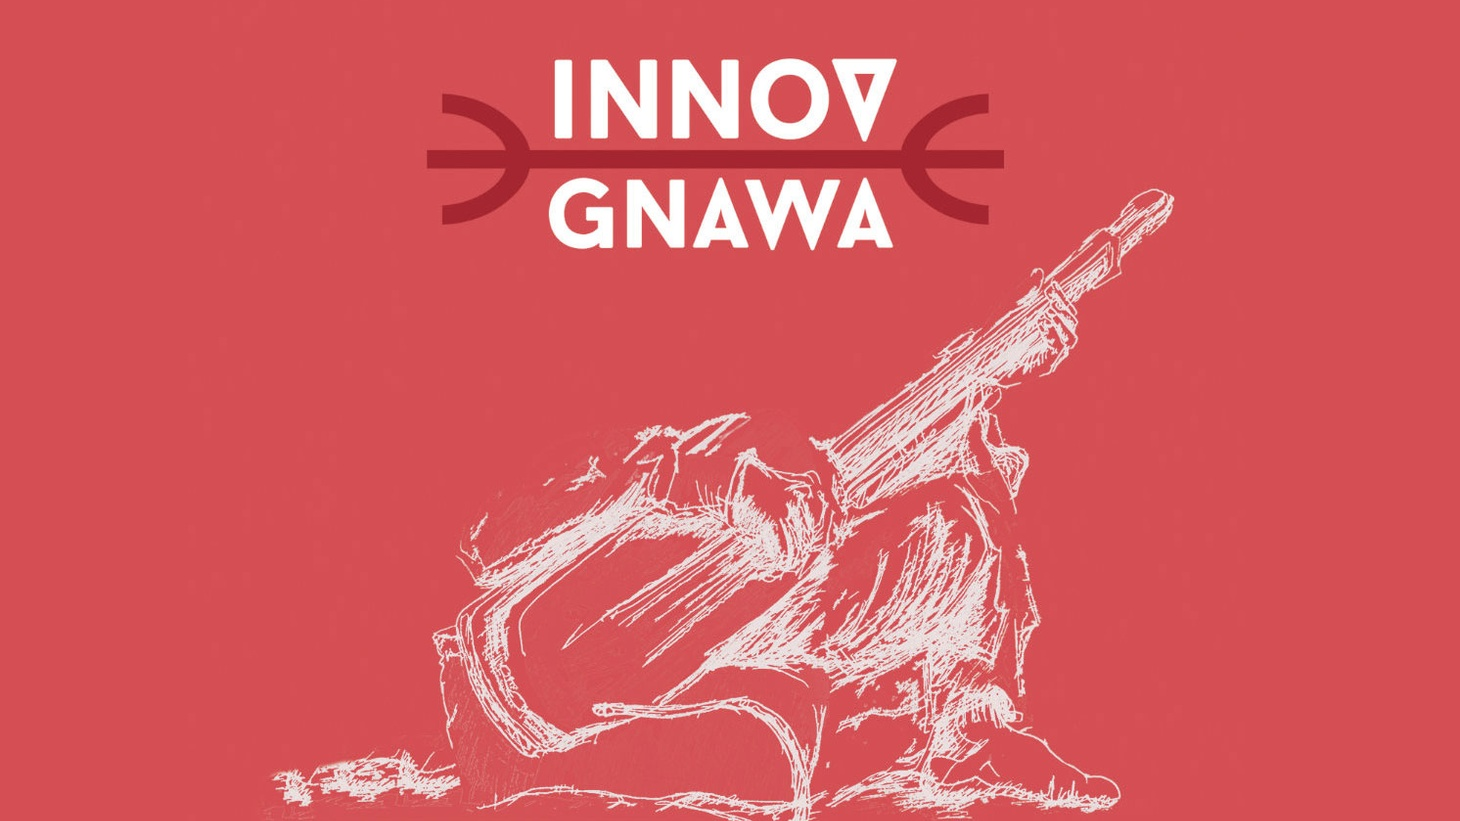 Today we showcase Innov Gnawa, a Moroccan music group whose rhythms and chants enchant the soul.